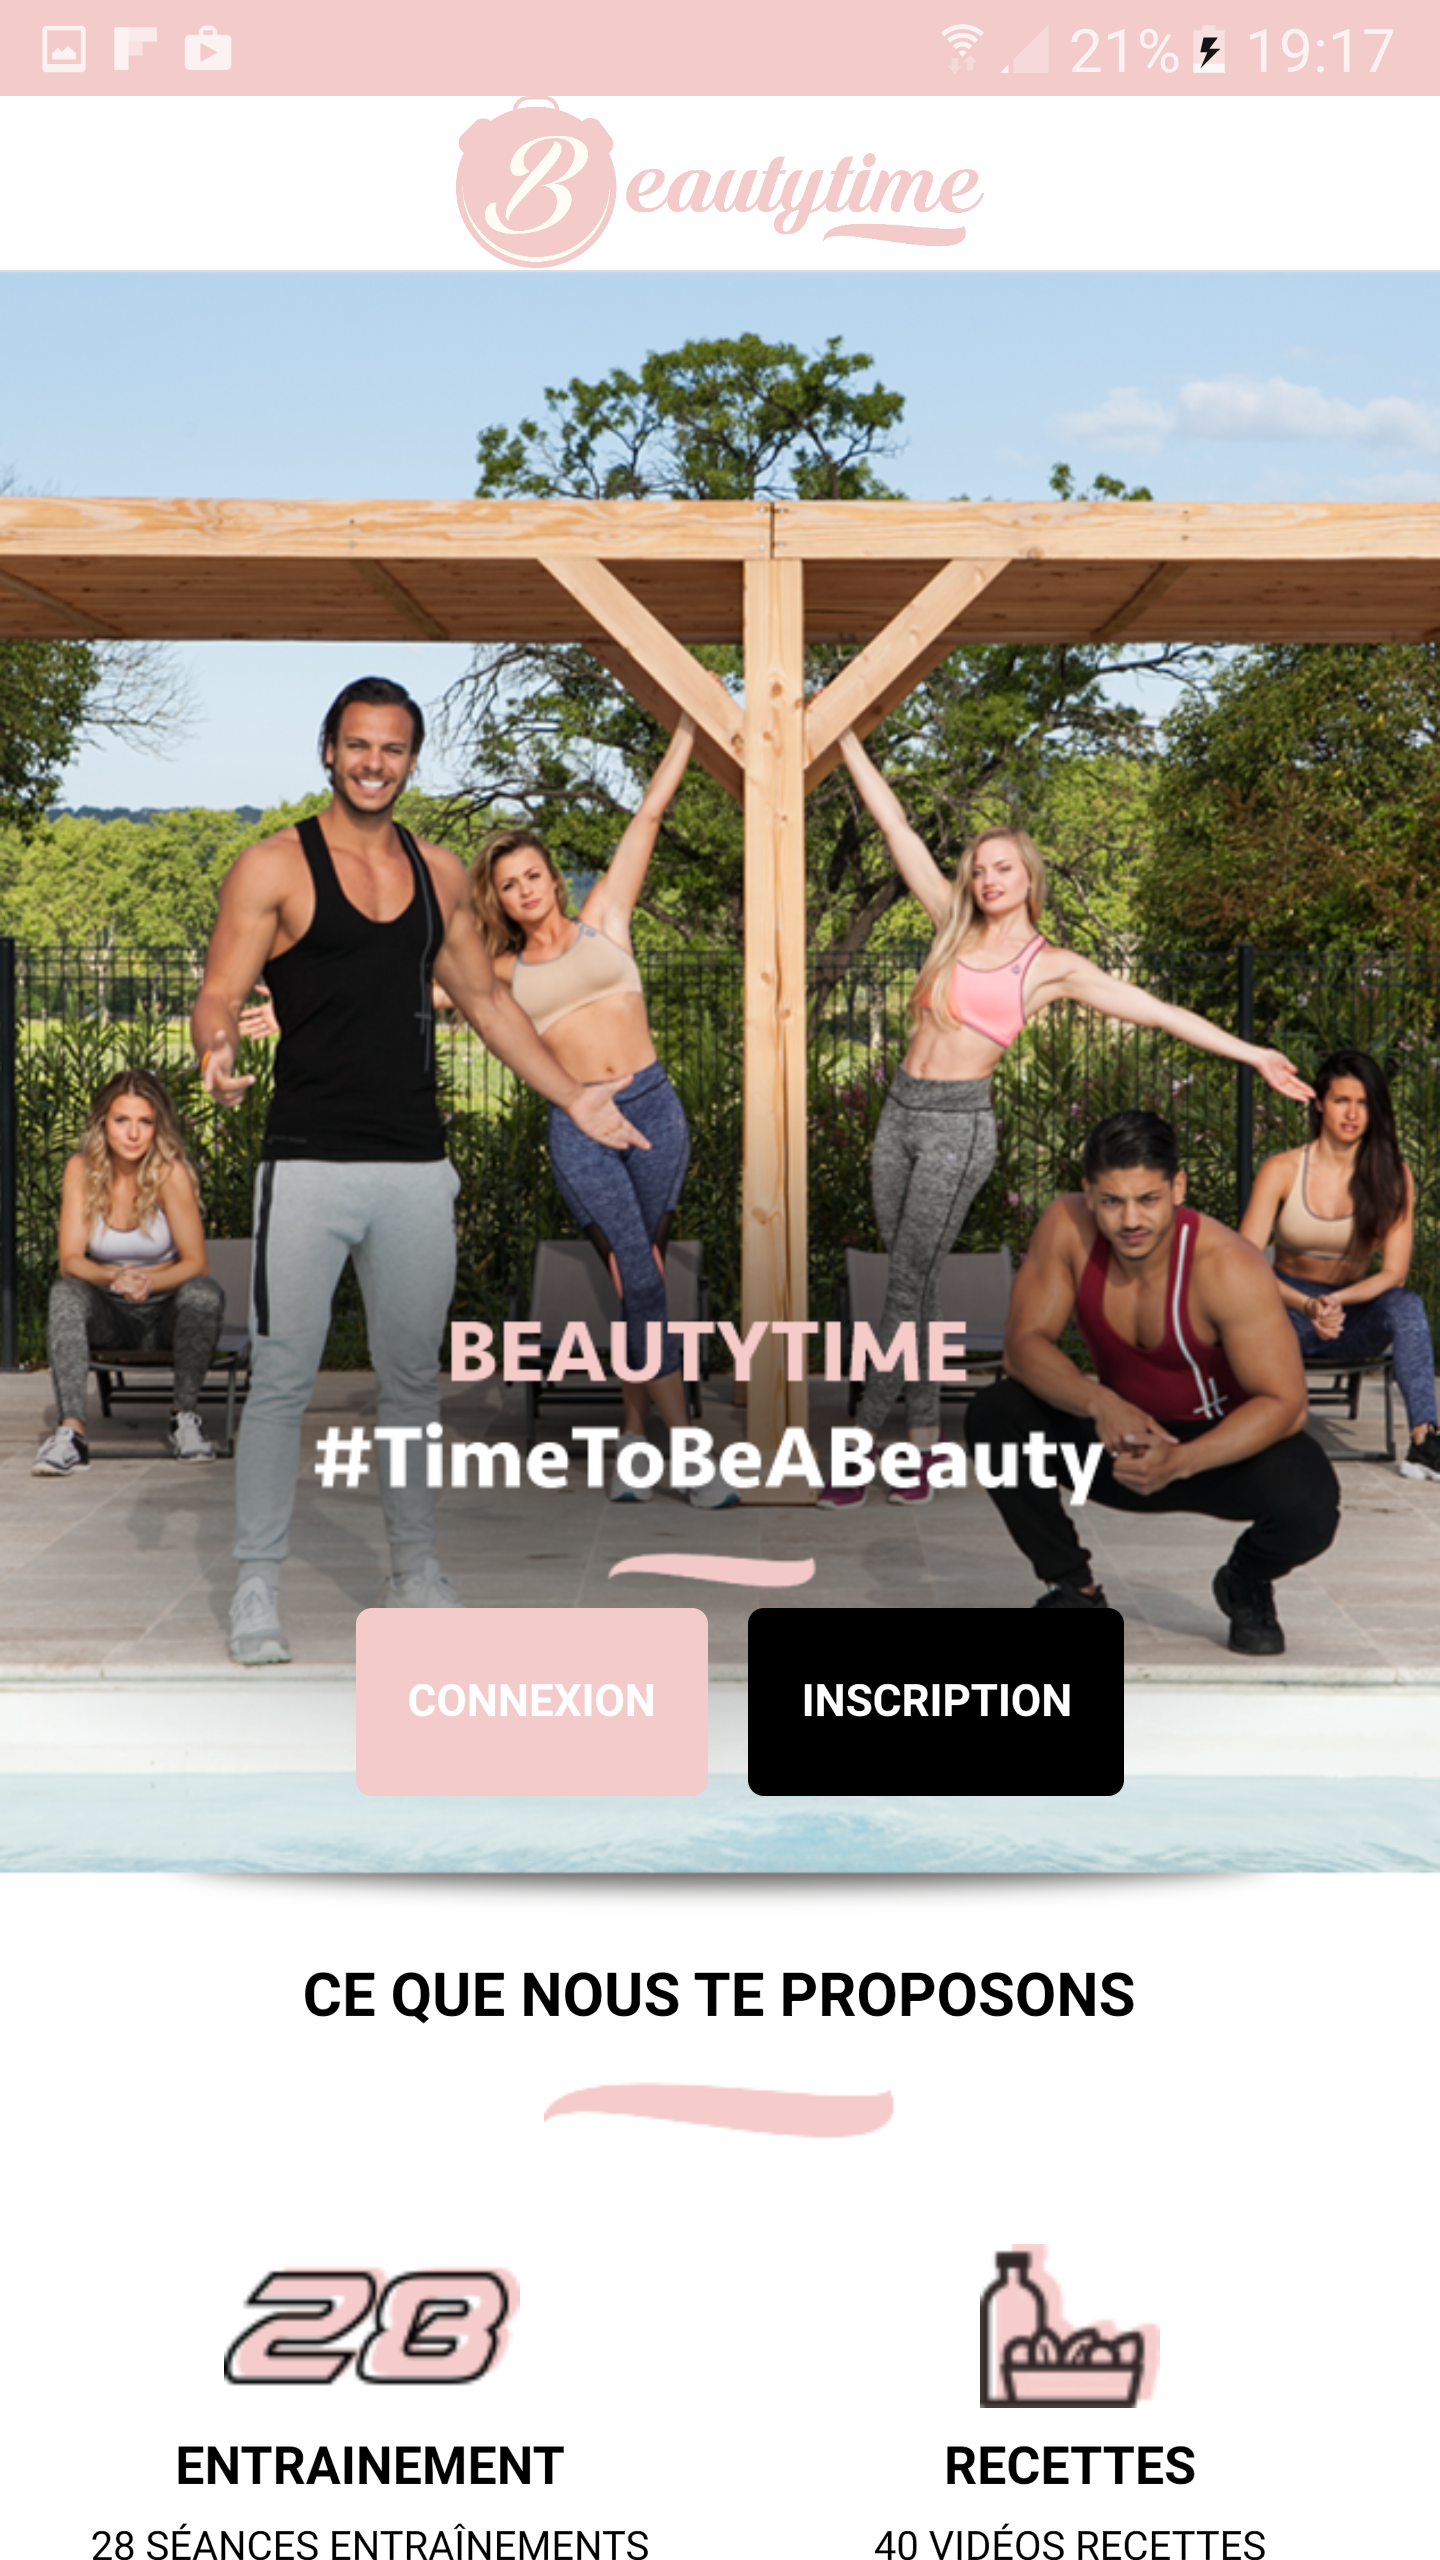 Image 4 projet Beautytime